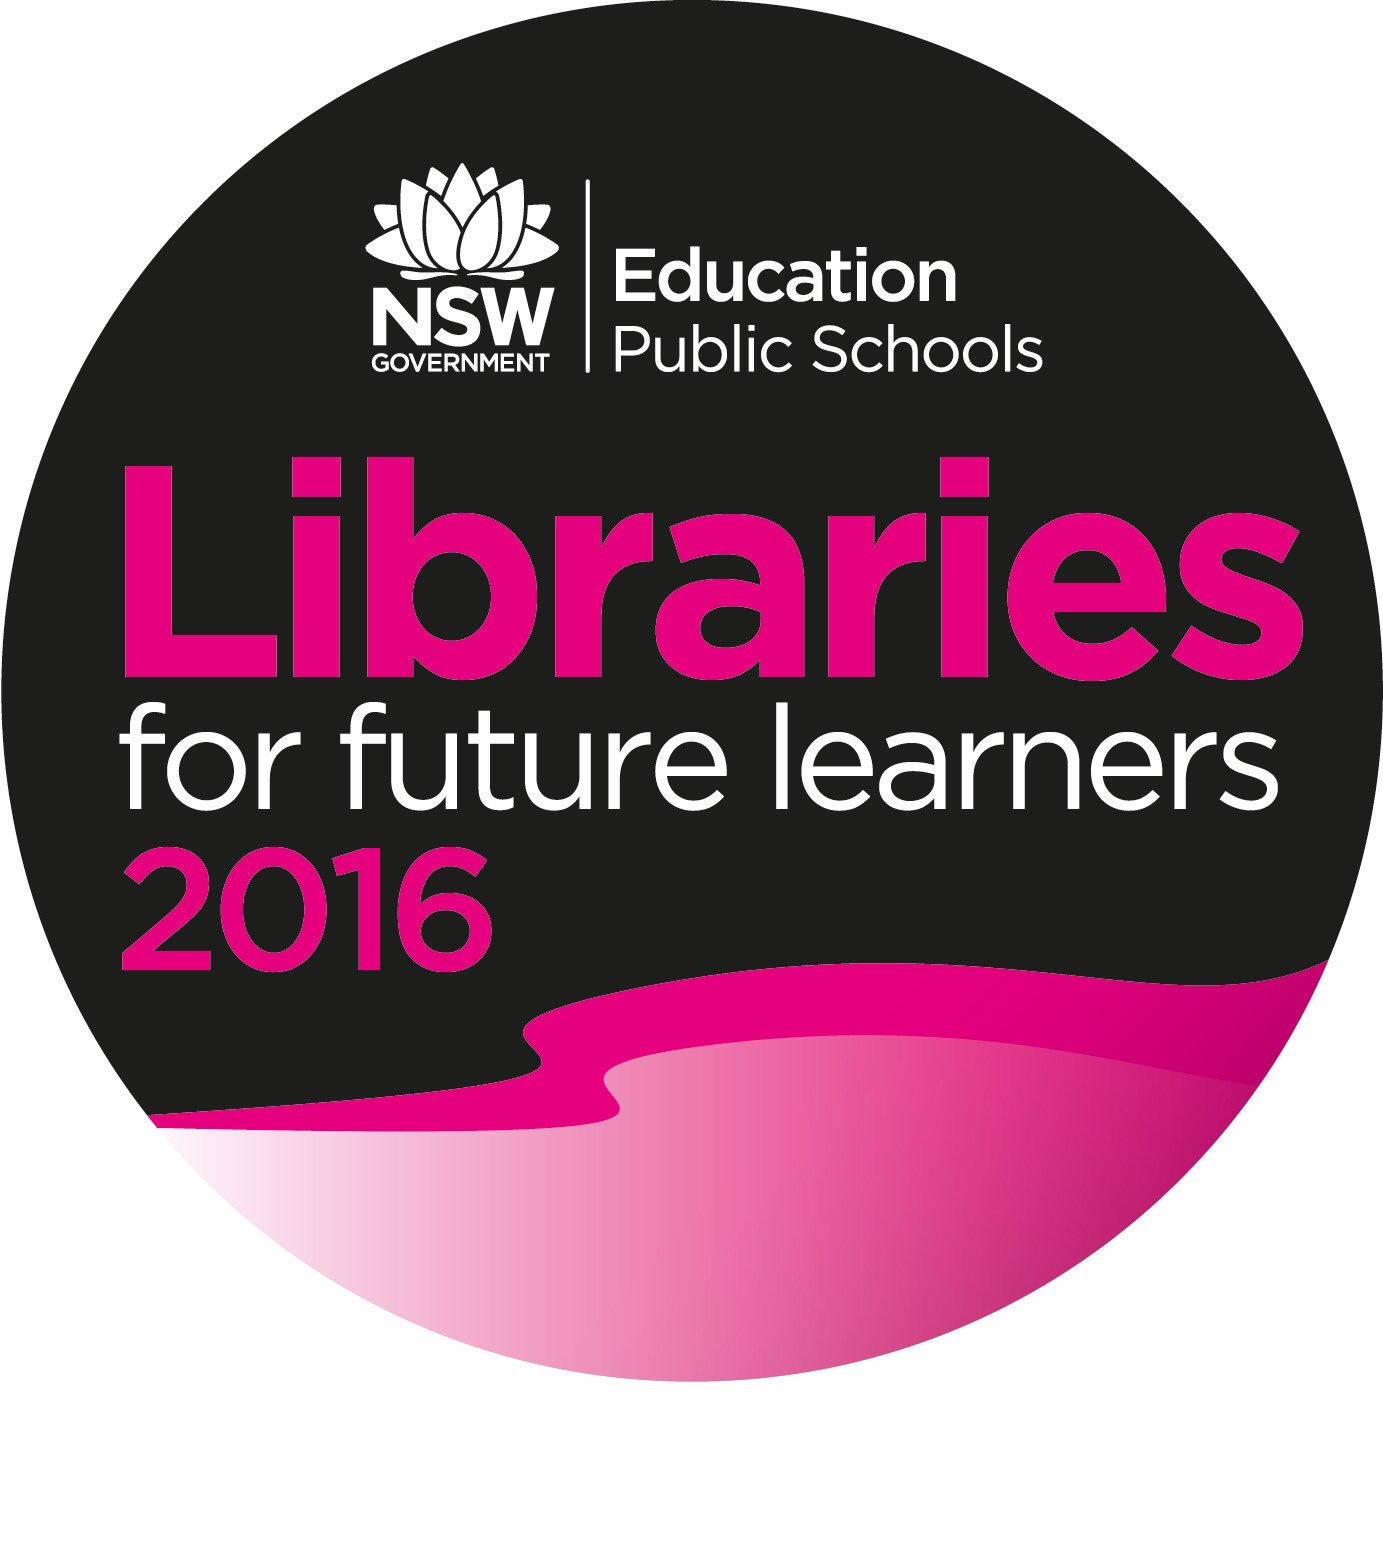 Libraries for future learners 2016: share some of our inspirations and connections. #L4FL16 https://t.co/g3TMMdiyoO